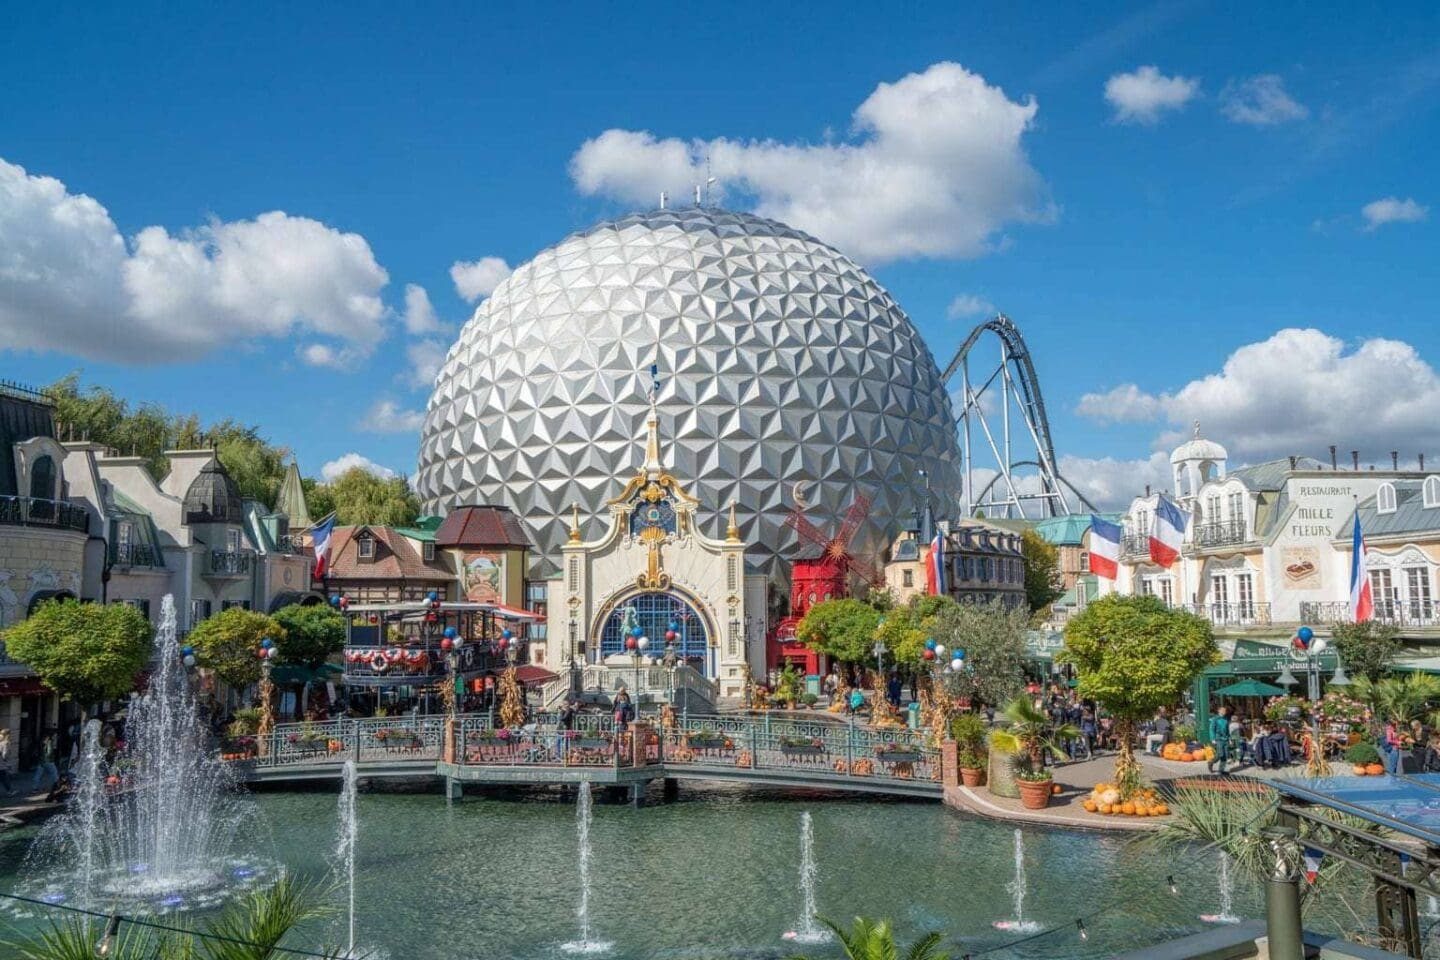 Europa-Park - Theme Park in Germany